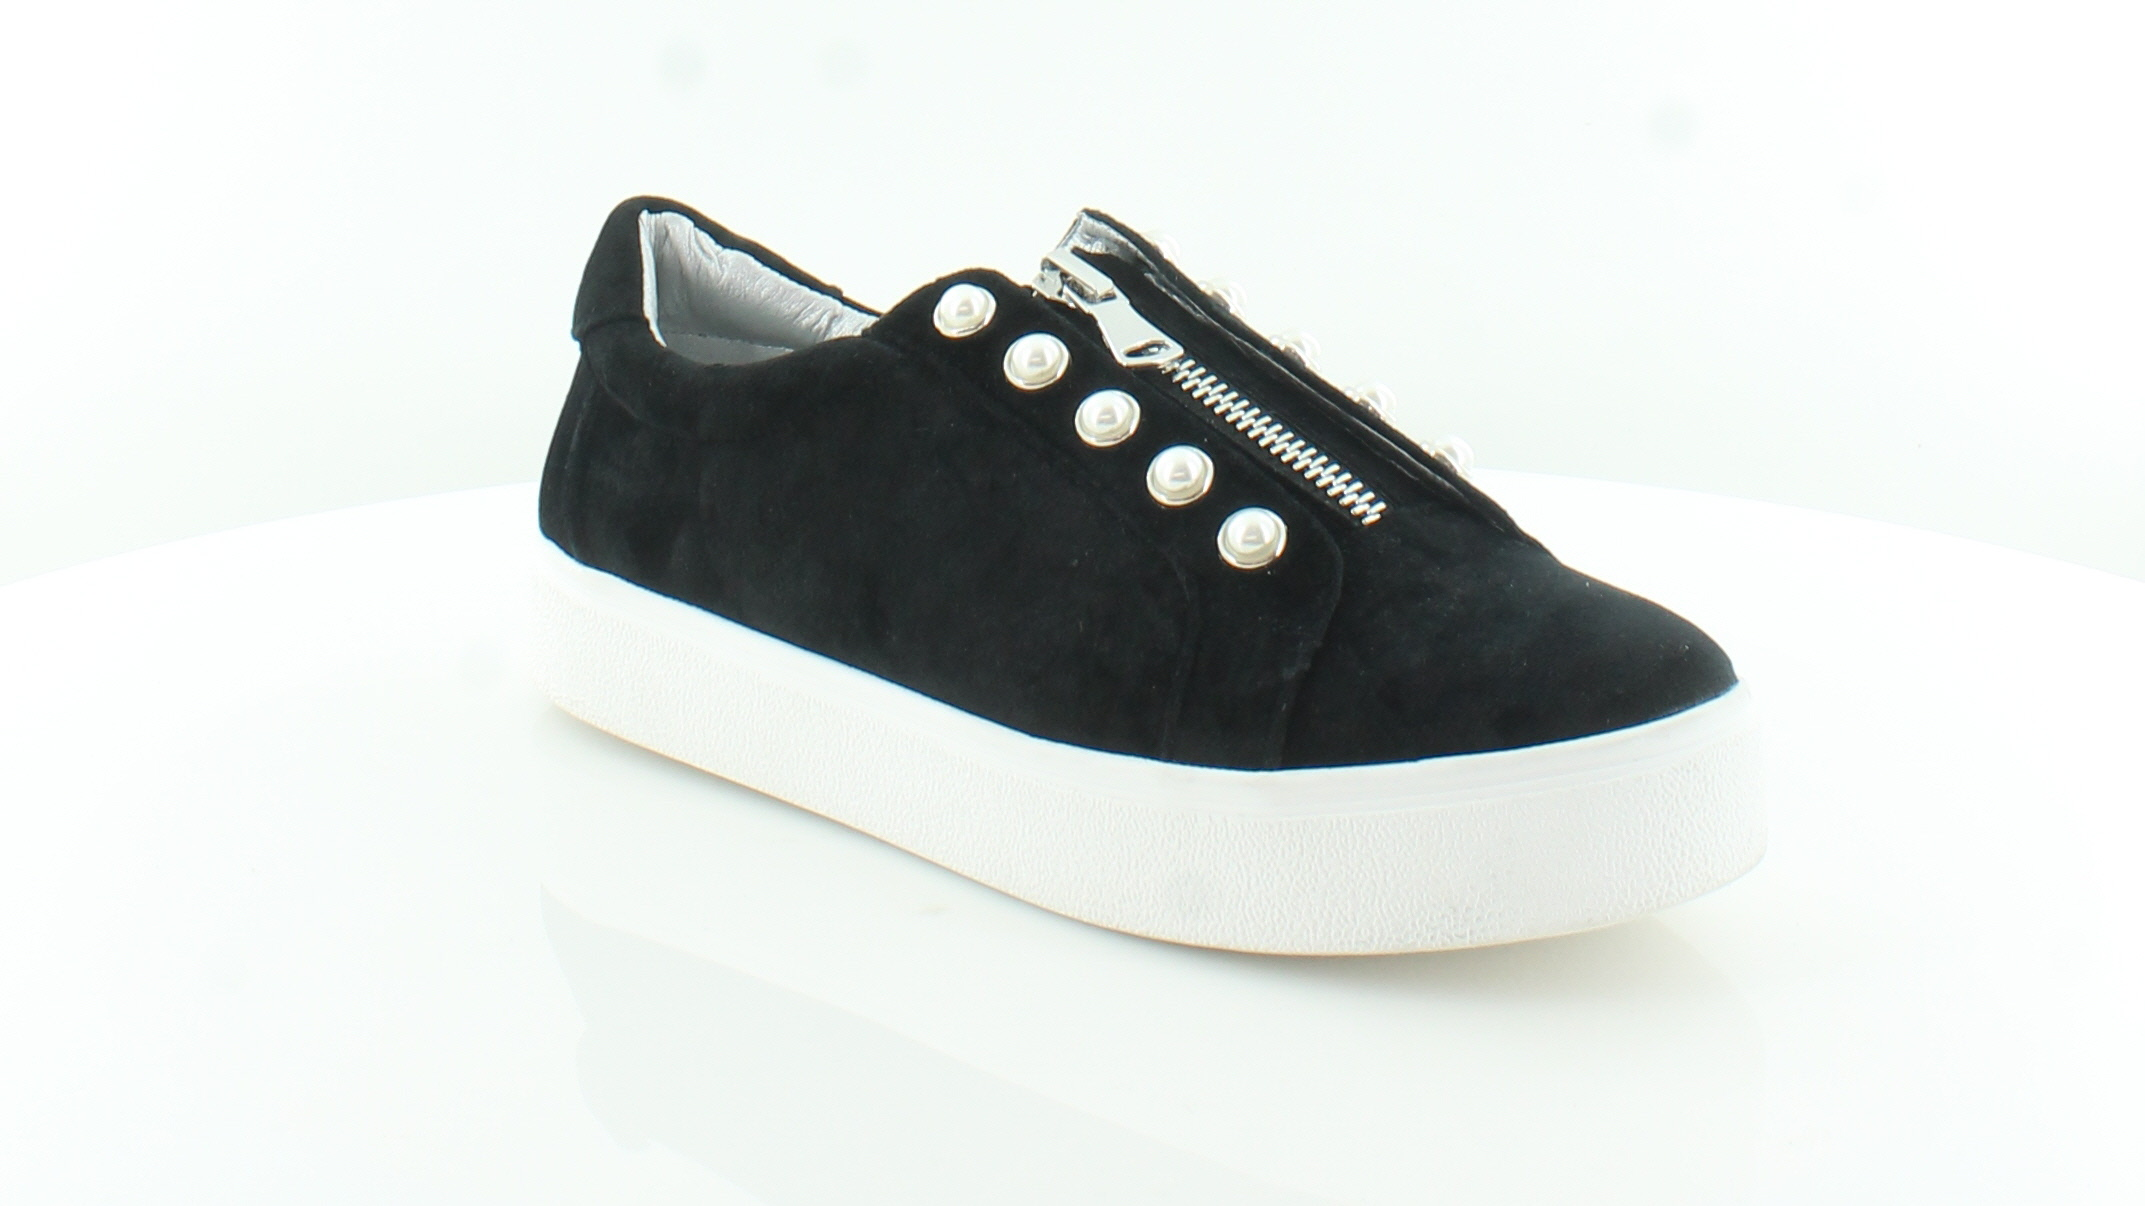 bbad60a66f9 Steve Madden Lynn Black Womens Shoes Size 11 M Fashion Sneakers MSRP ...